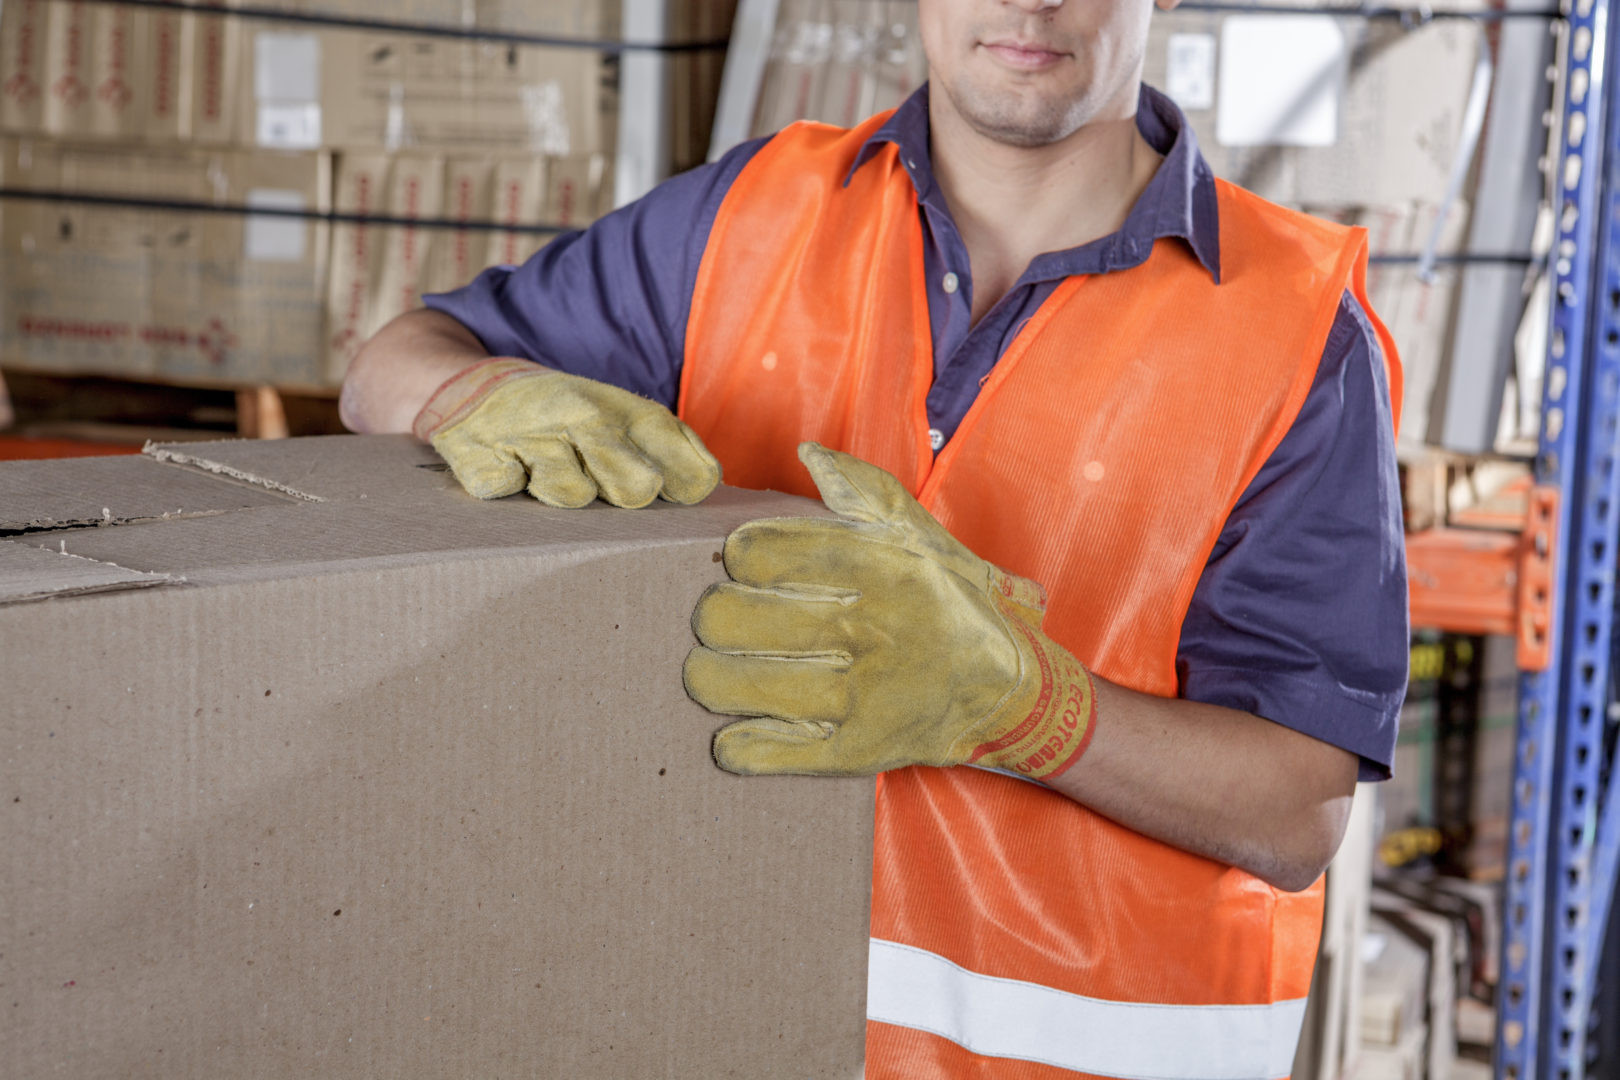 Workers In Warehouse Preparing Goods For shipping